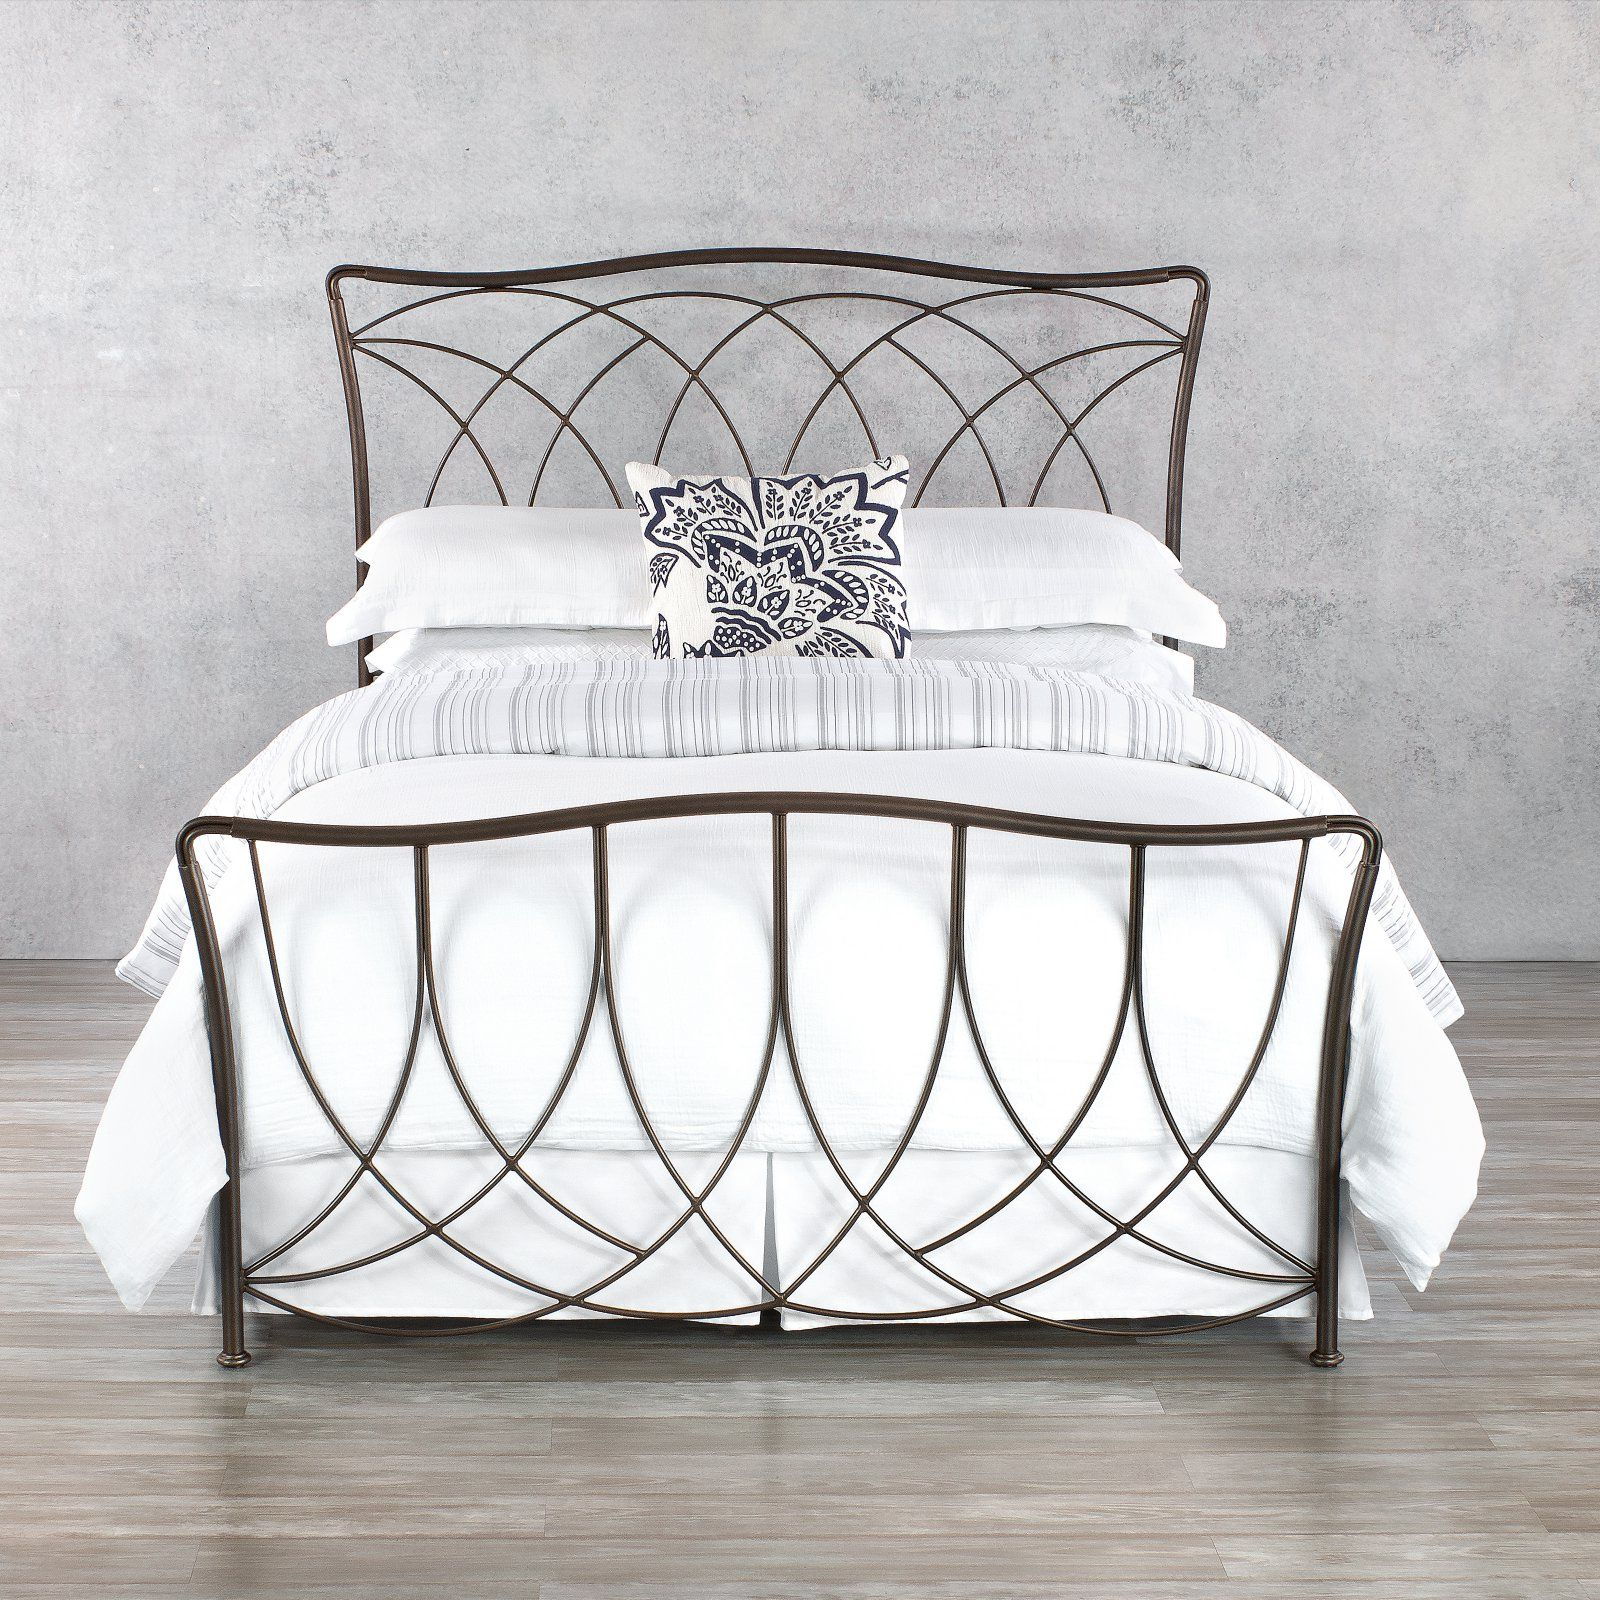 Wesley Allen Marin Bed Iron bed frame, Iron bed, White